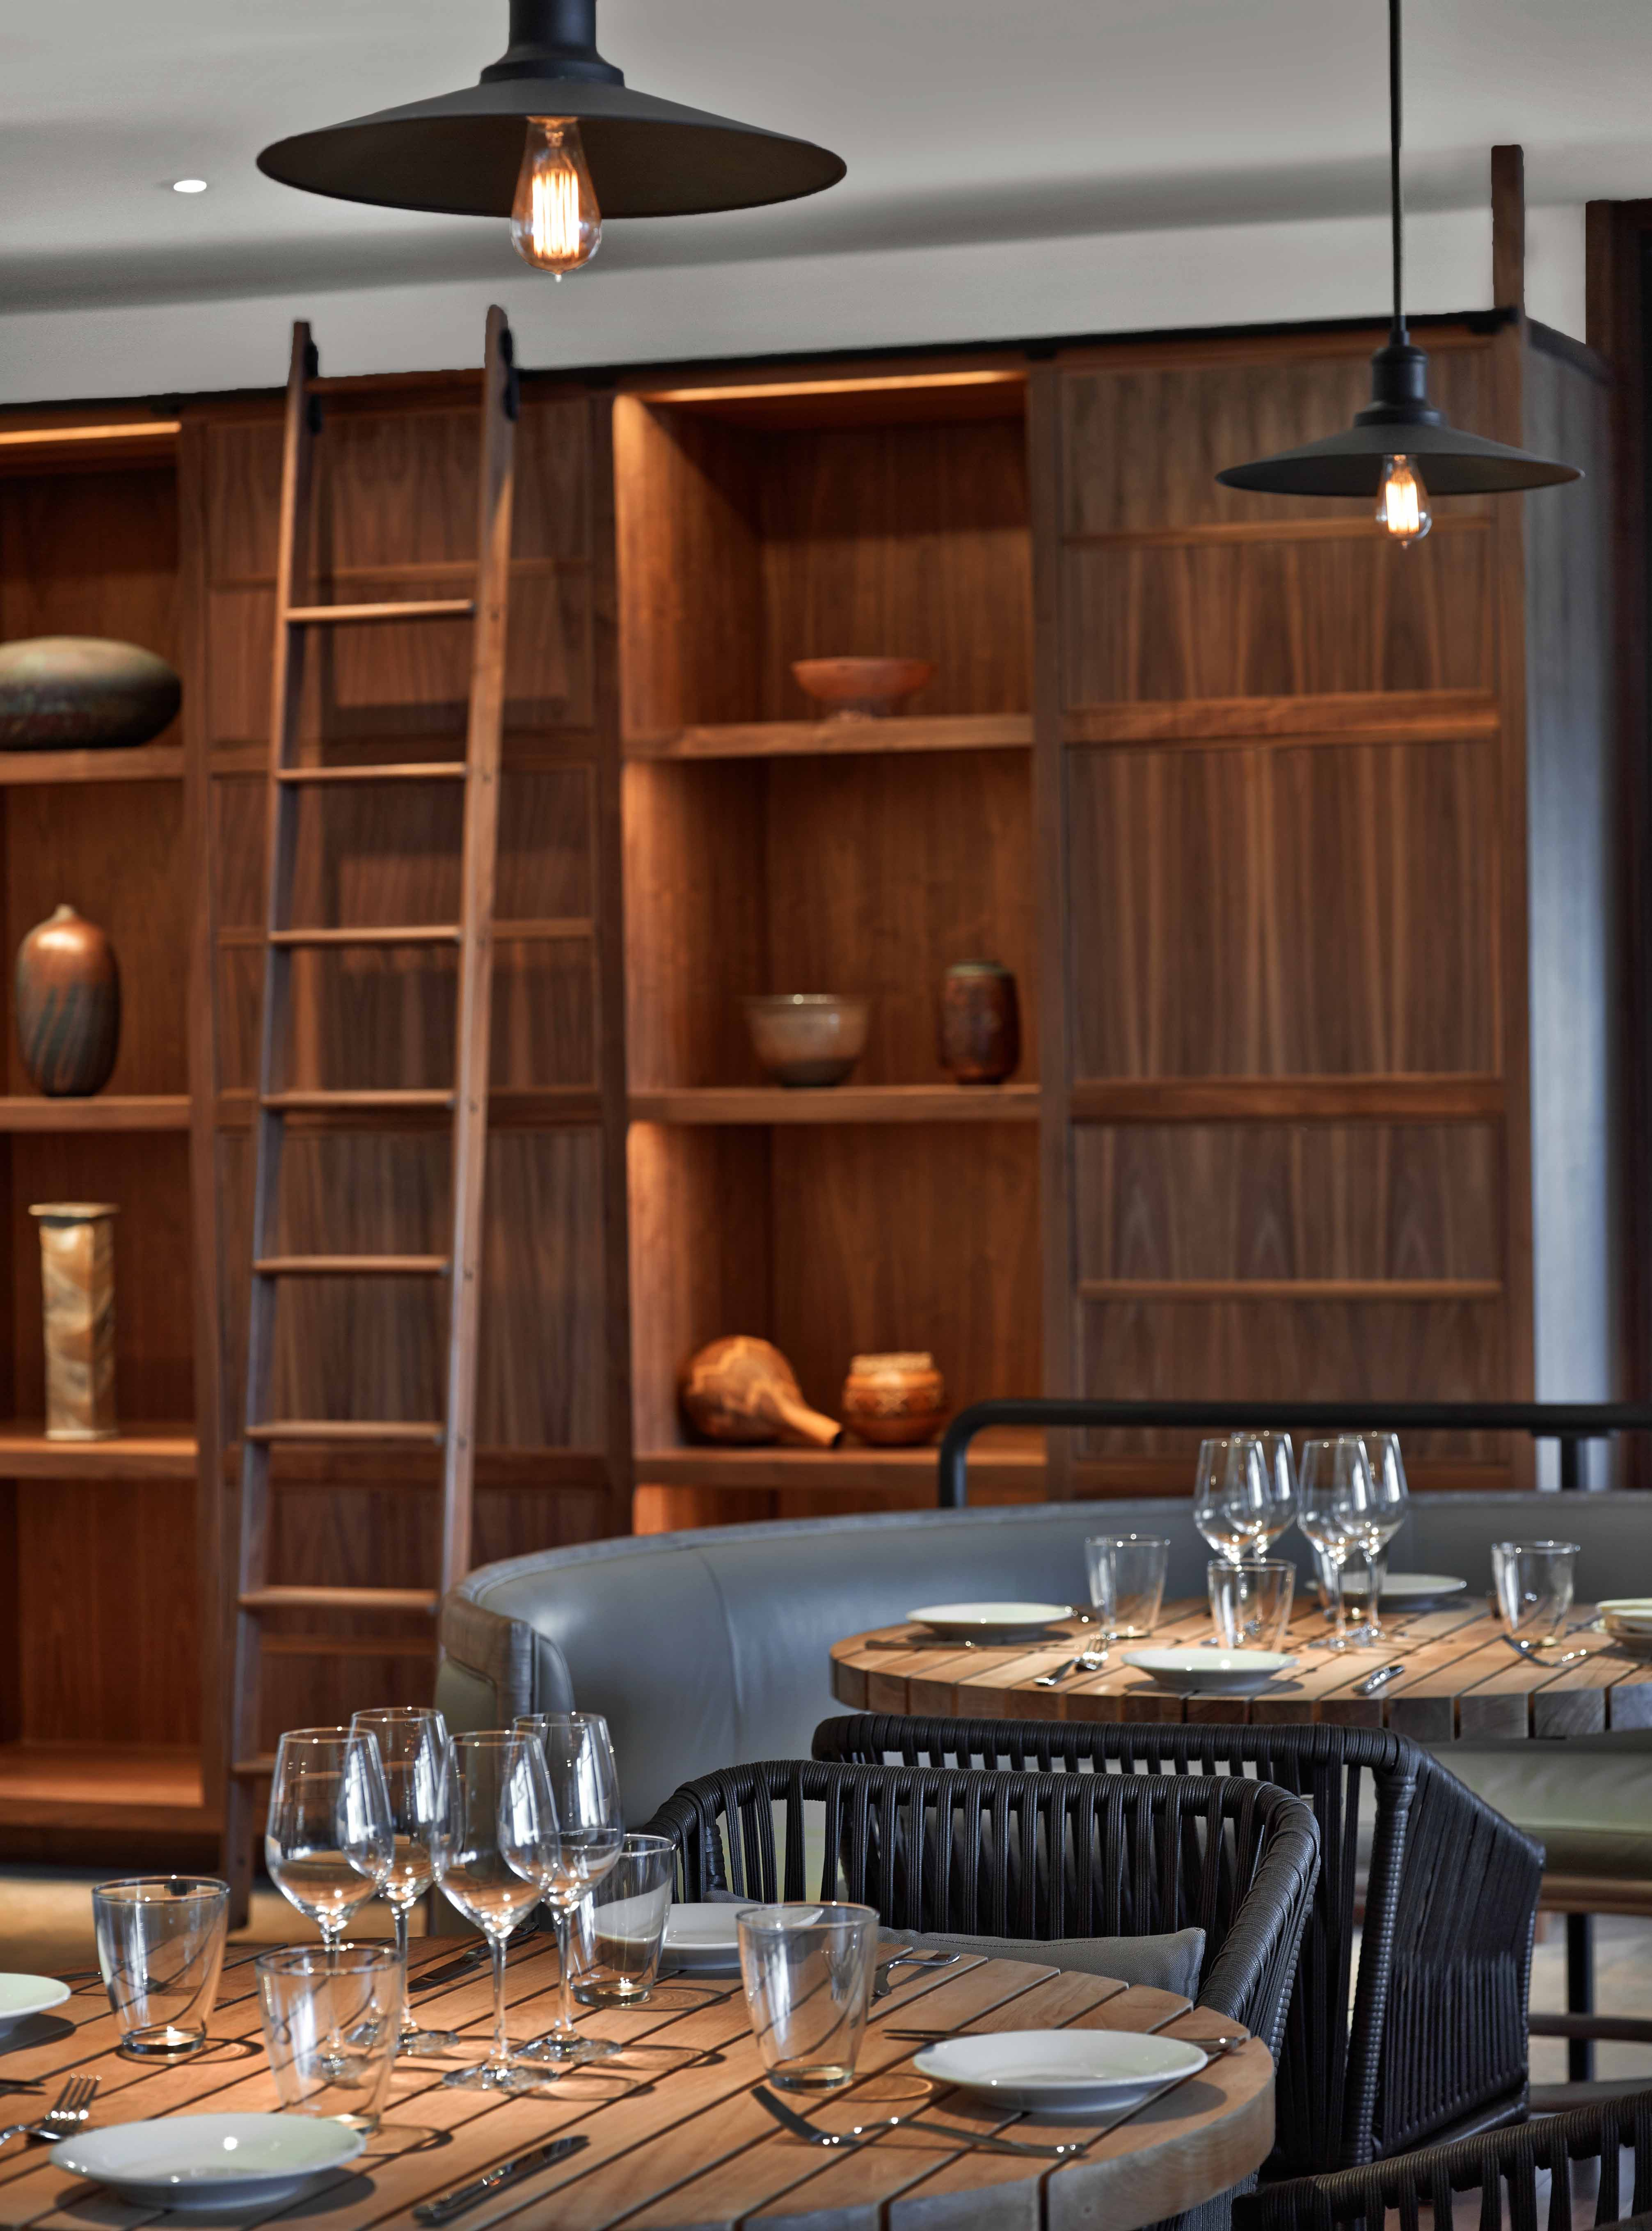 maui hotels with kitchens kitchen remodel okc now andaz launches new cooking classes at ka